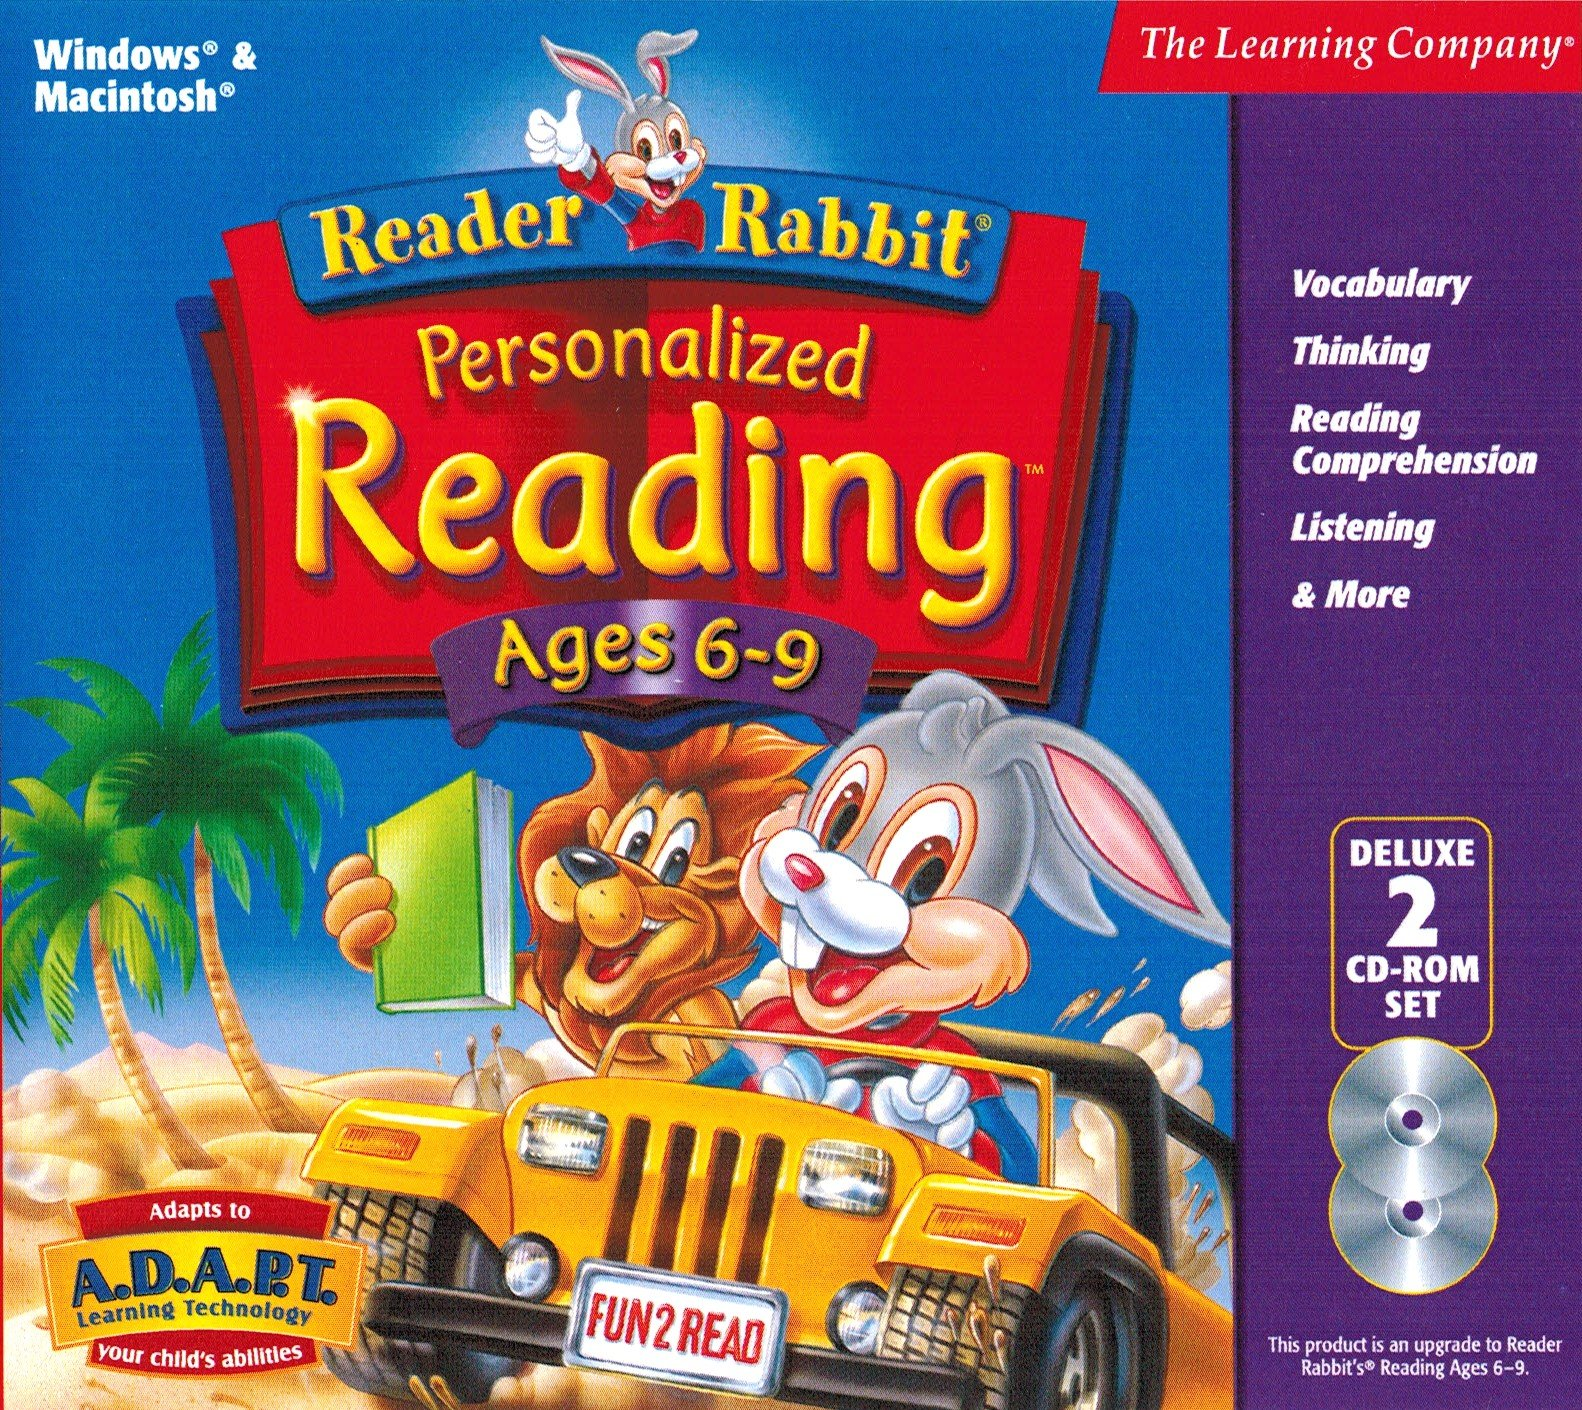 Learning Company Reader Rabbit Personalized Reading Ages 6-9 Deluxe by The Learning Company